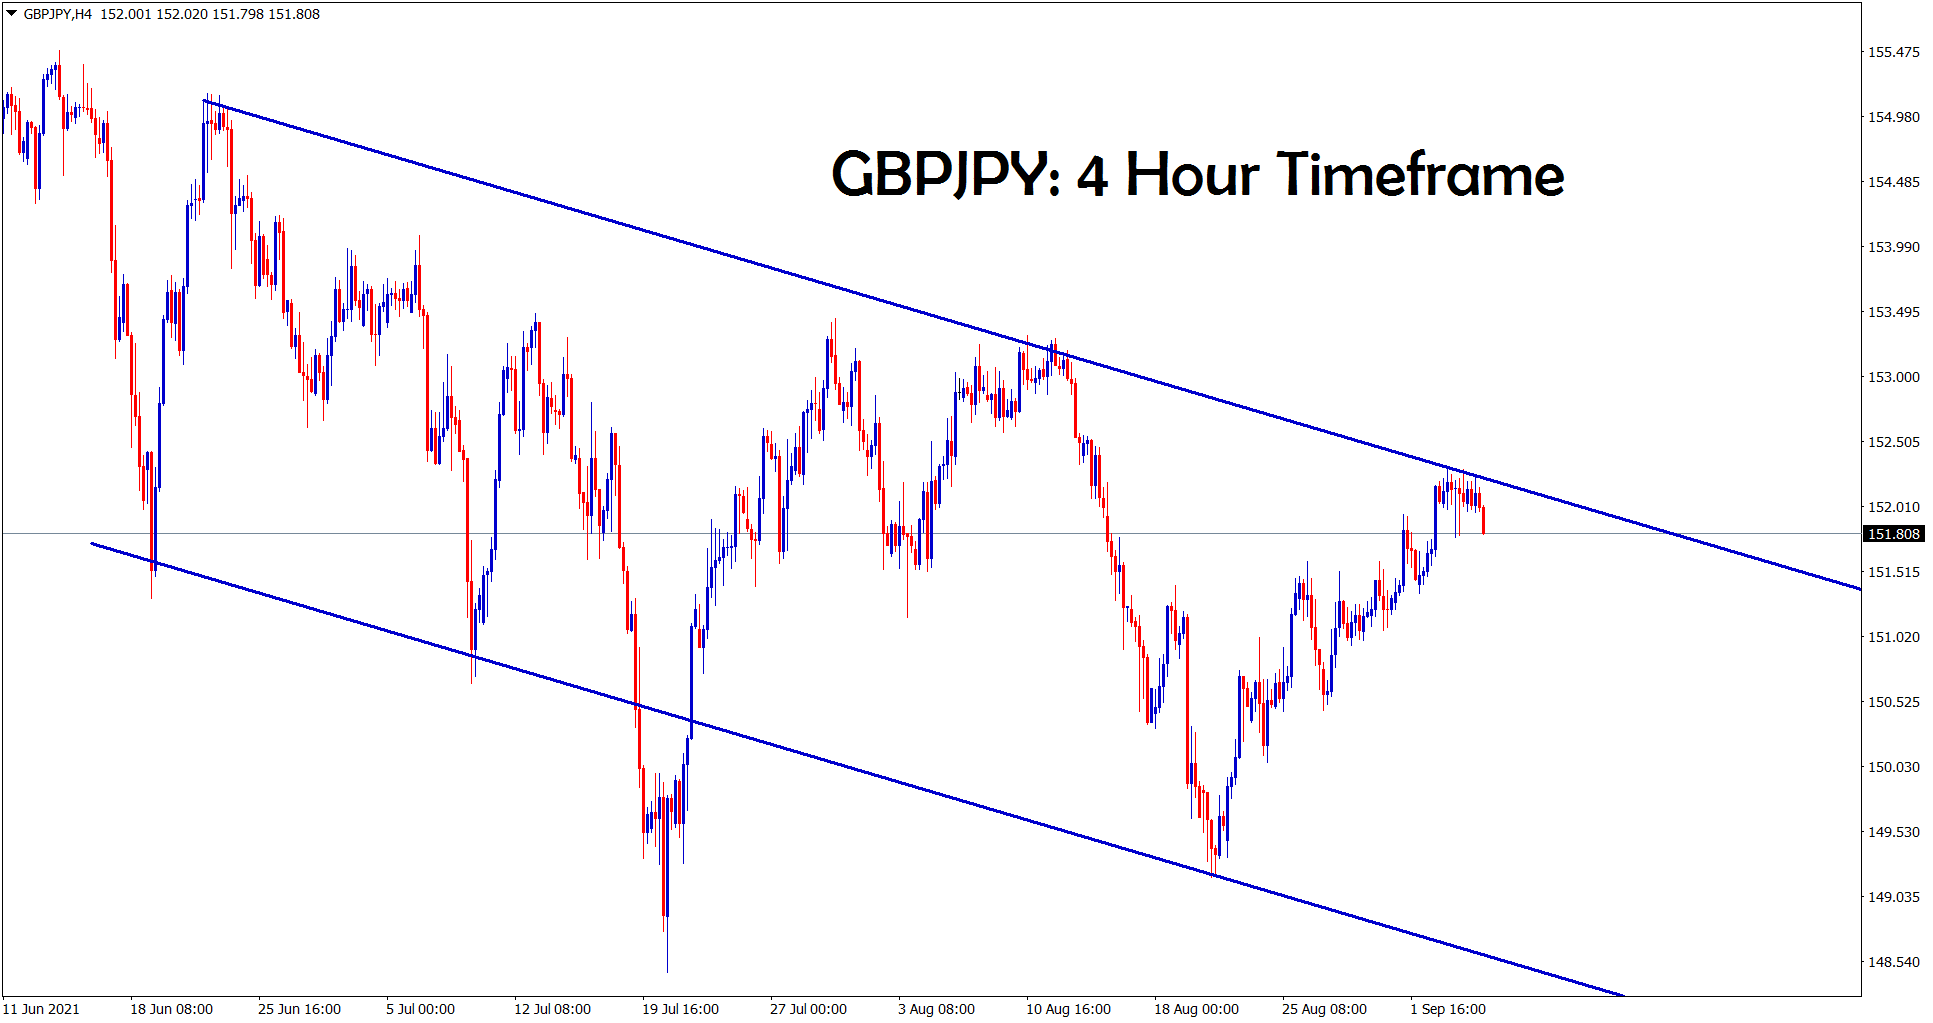 GBPJPY hits the lower high level of a downtrend line